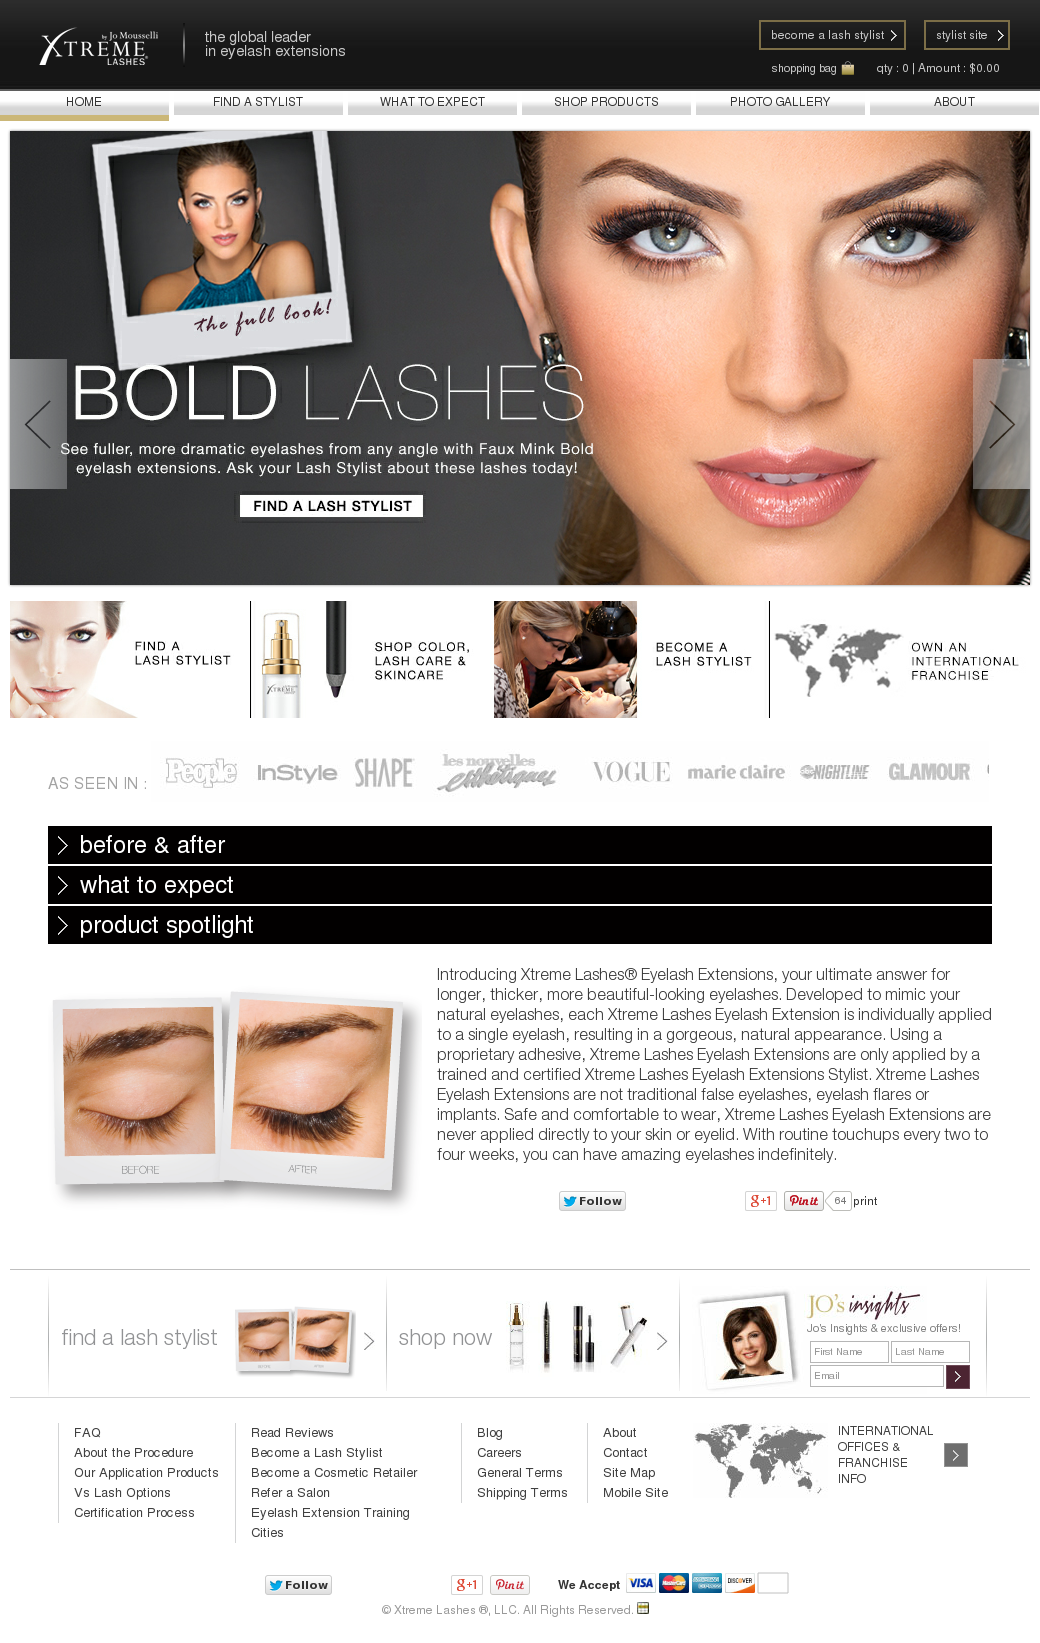 Xtreme Lashes Competitors, Revenue and Employees - Owler